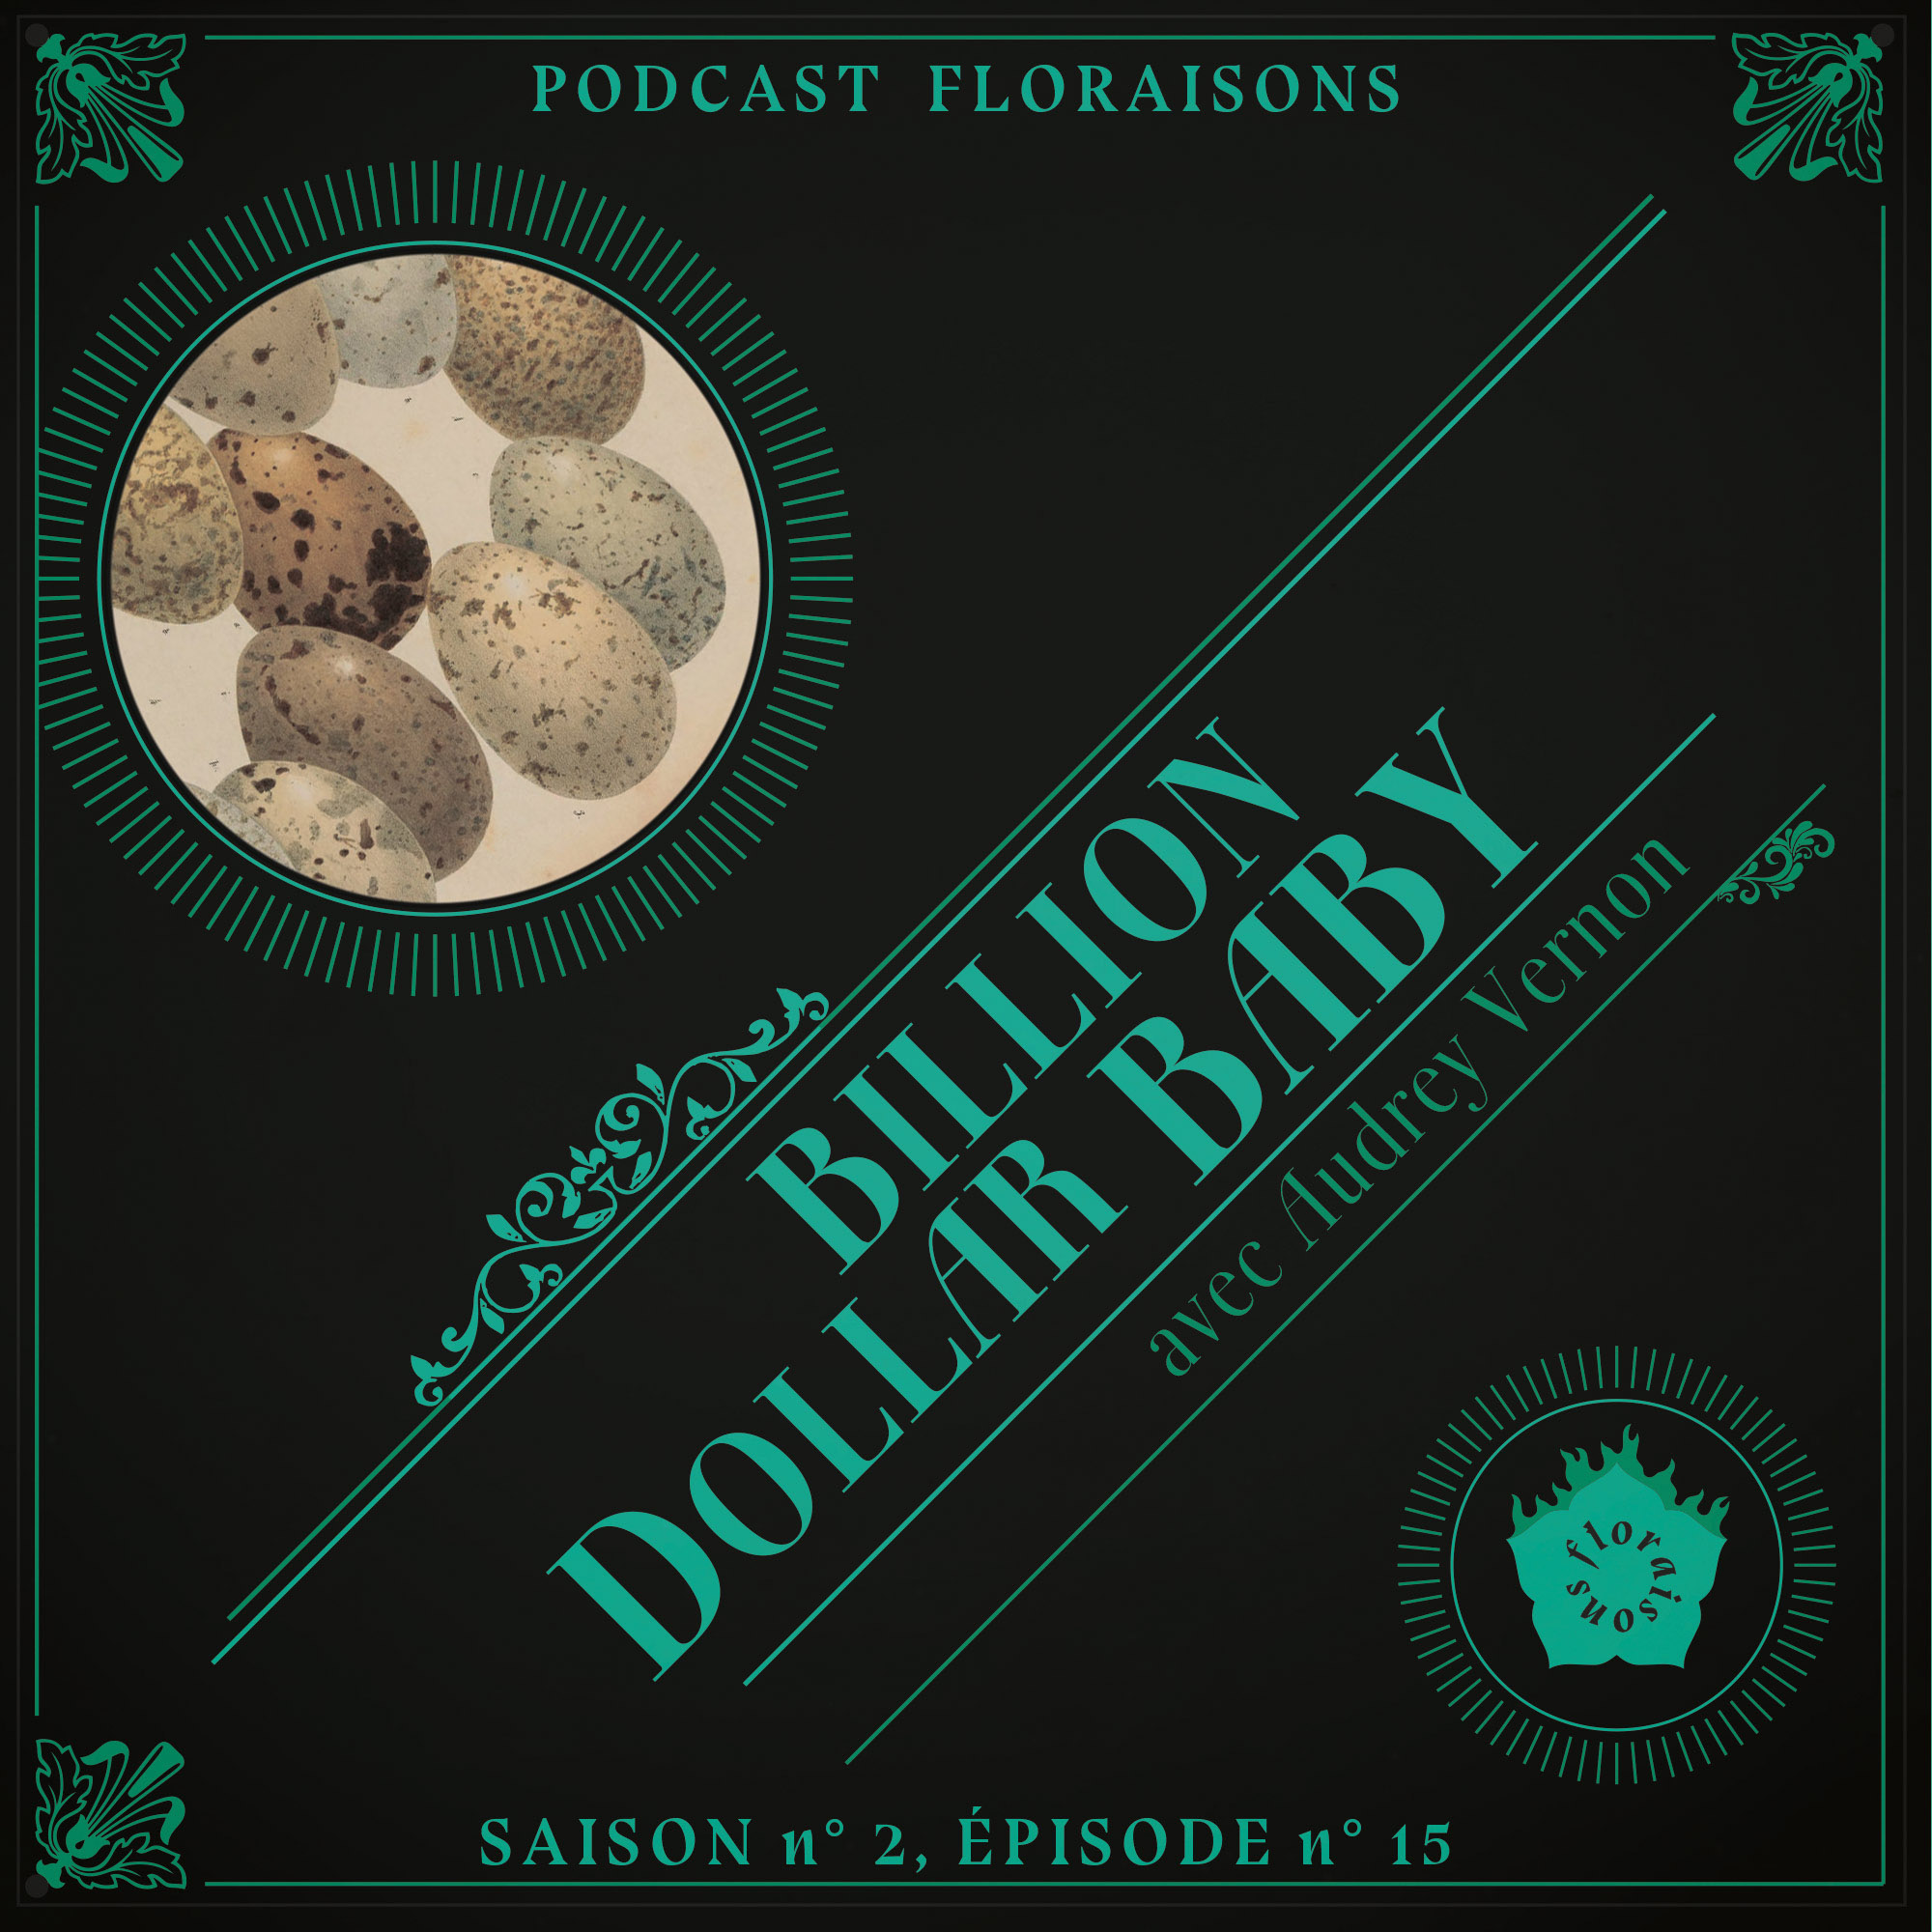 Billion Dollar Baby Audrey Vernon podcast floraisons